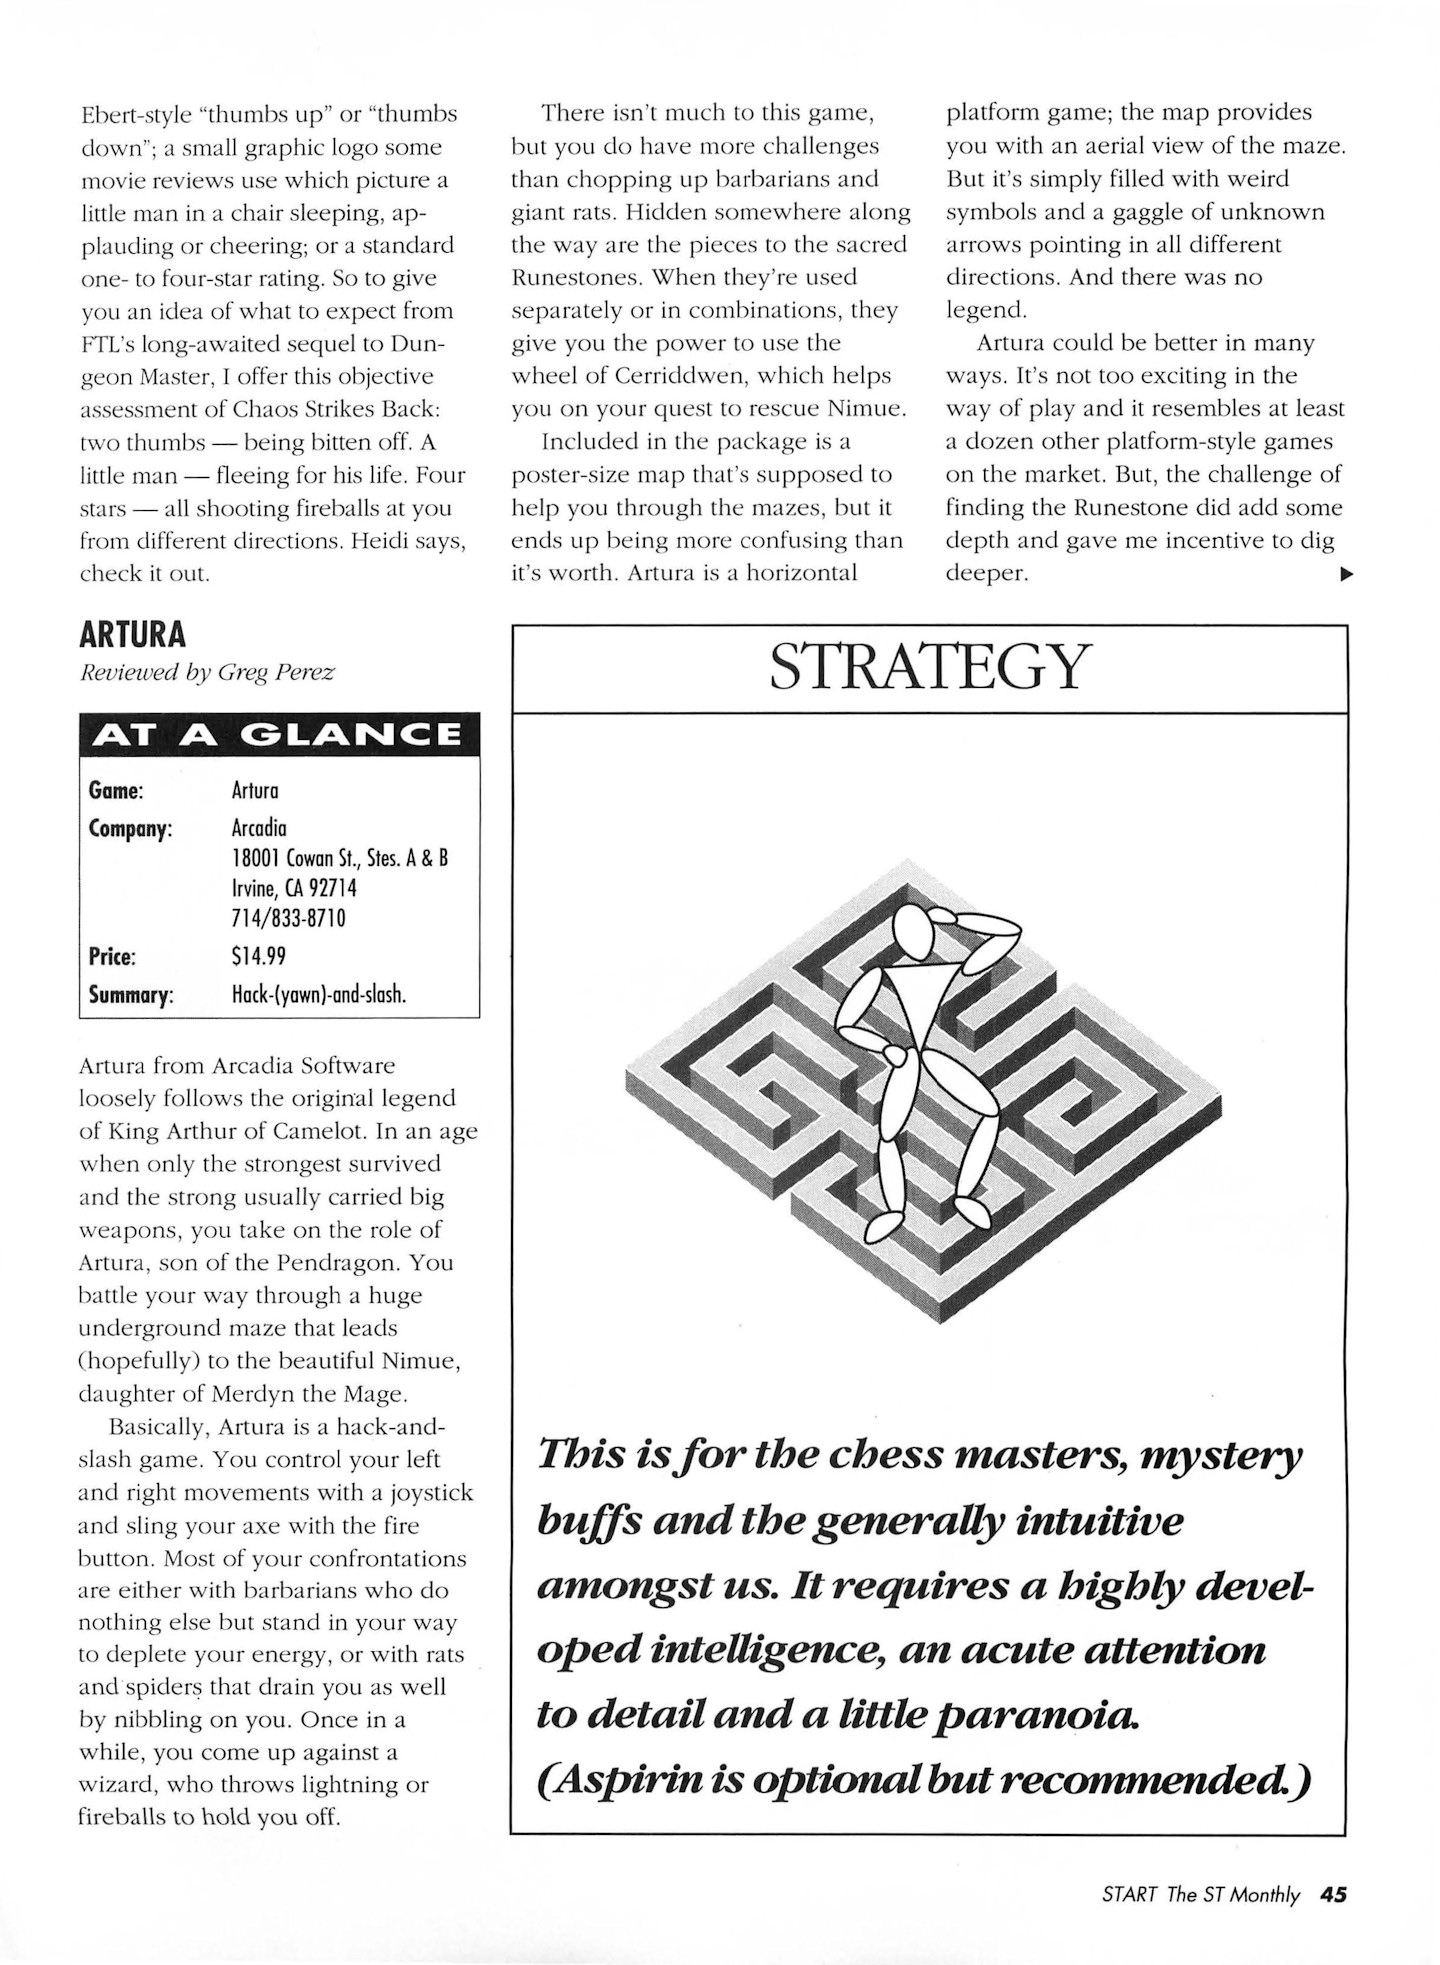 Chaos Strikes Back for Atari ST Review published in American magazine 'Start', Vol 4 No 11 June 1990, Page 45